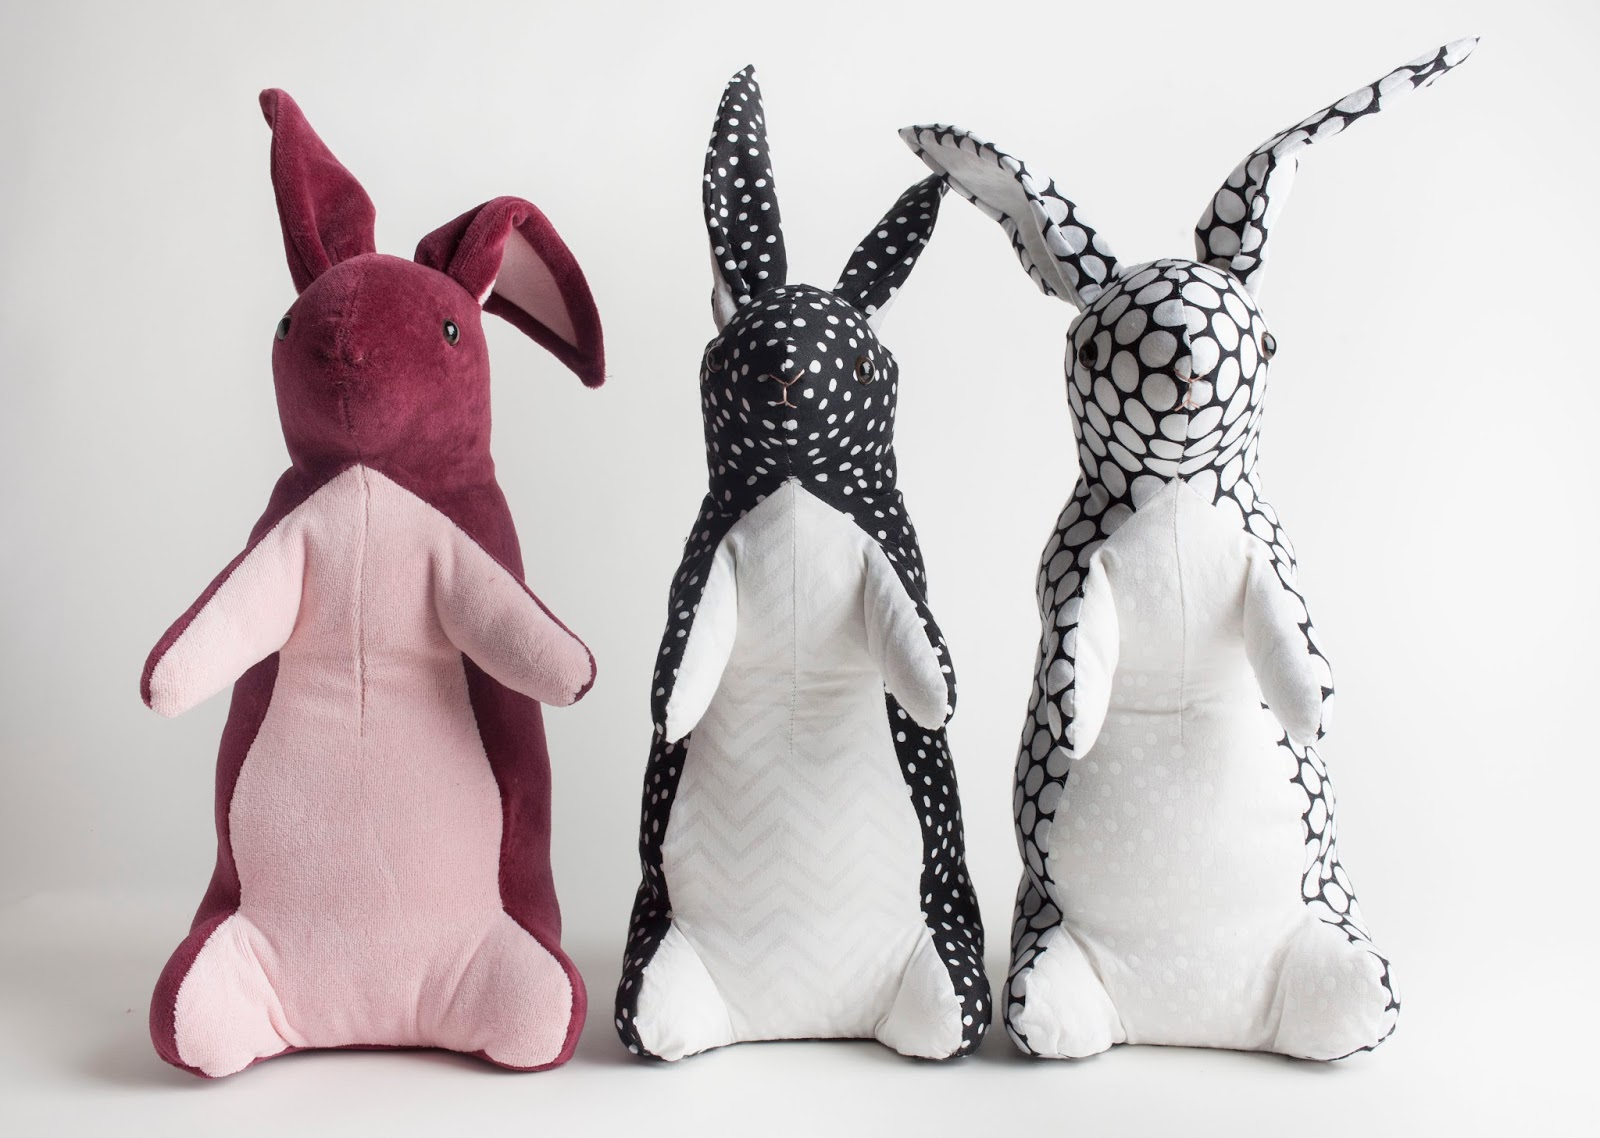 Simple patterns hares 86